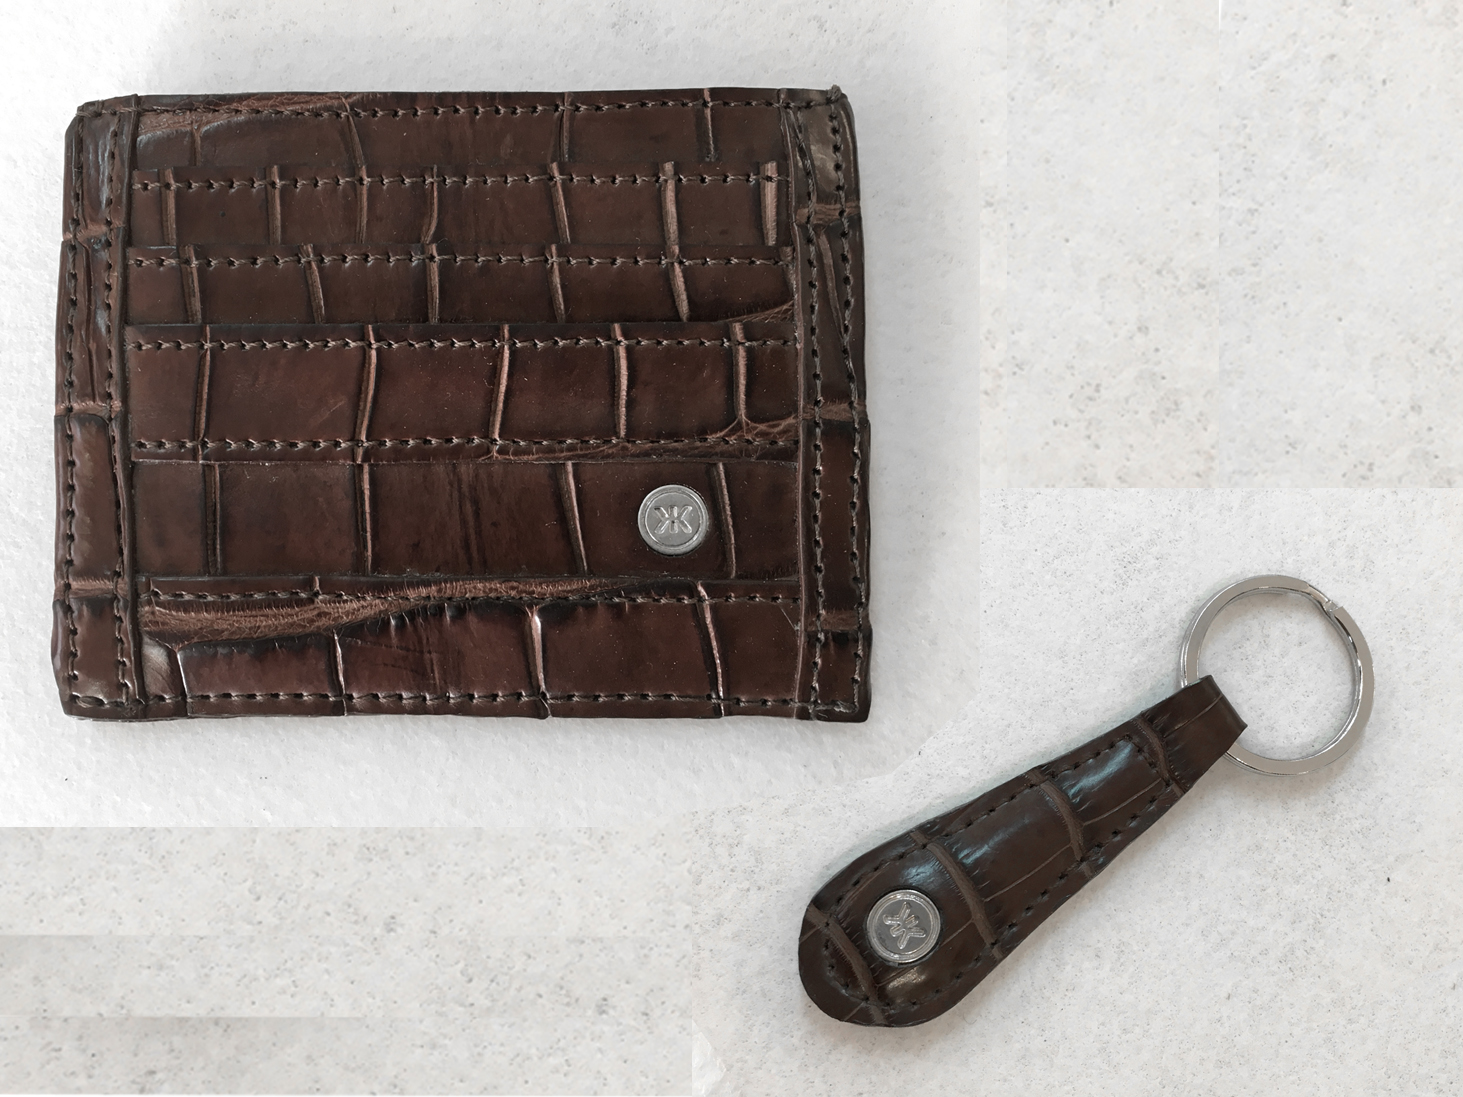 Crocodile key chain and wallet